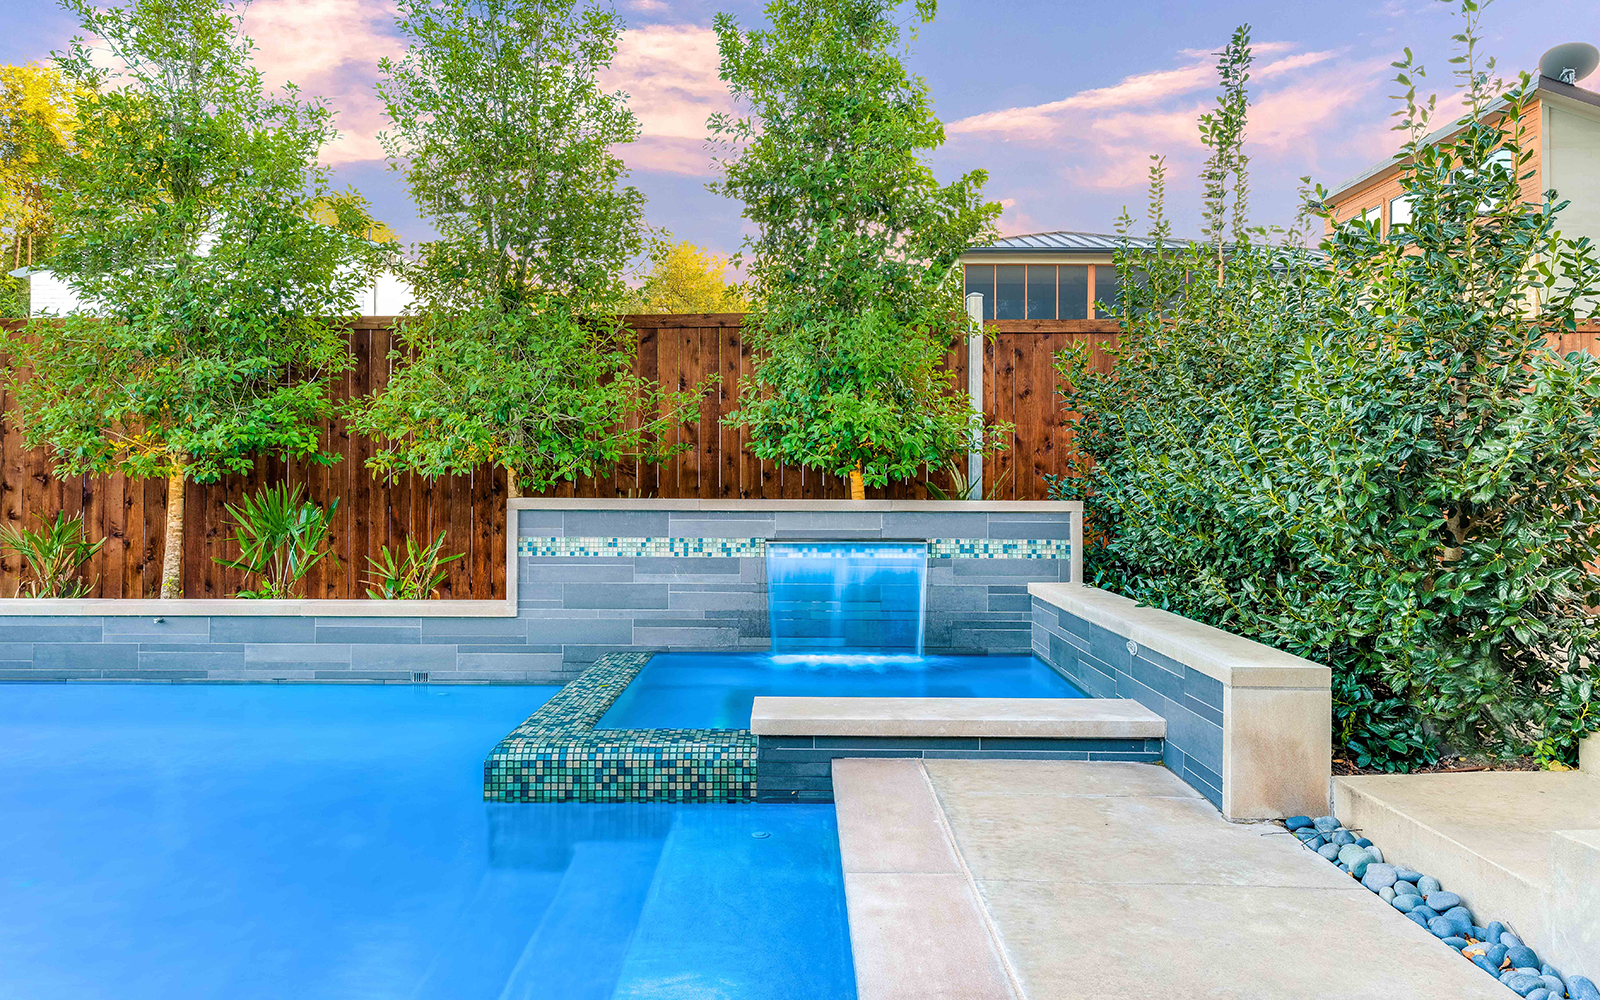 sunnyland-modern-pool-spa-fountain.jpg